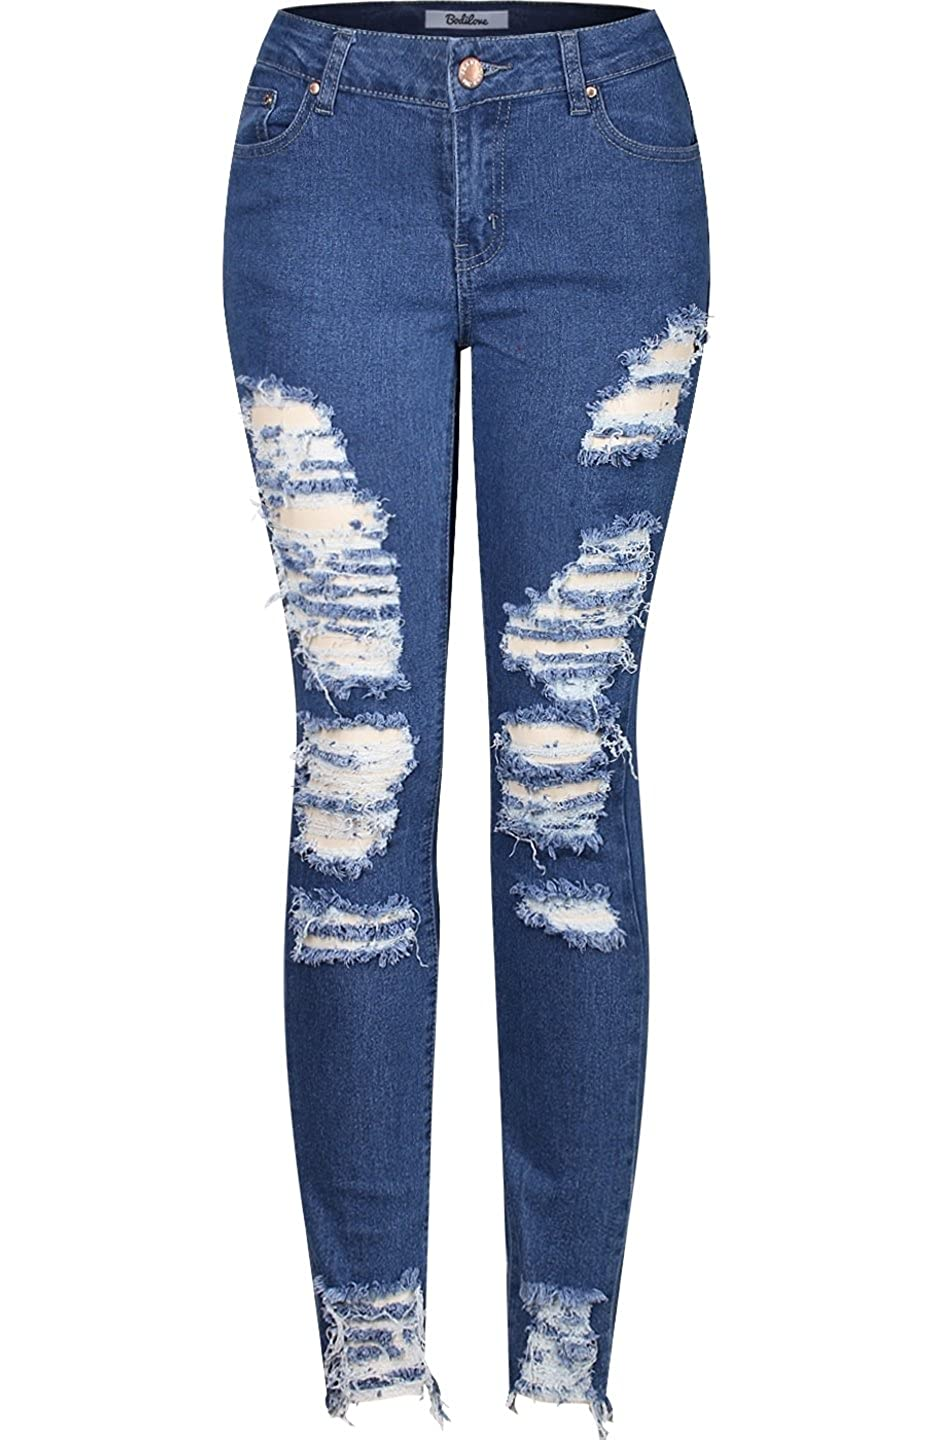 2LUV Women's Trendy Distressed 5 Pocket Denim Skinny Jeans